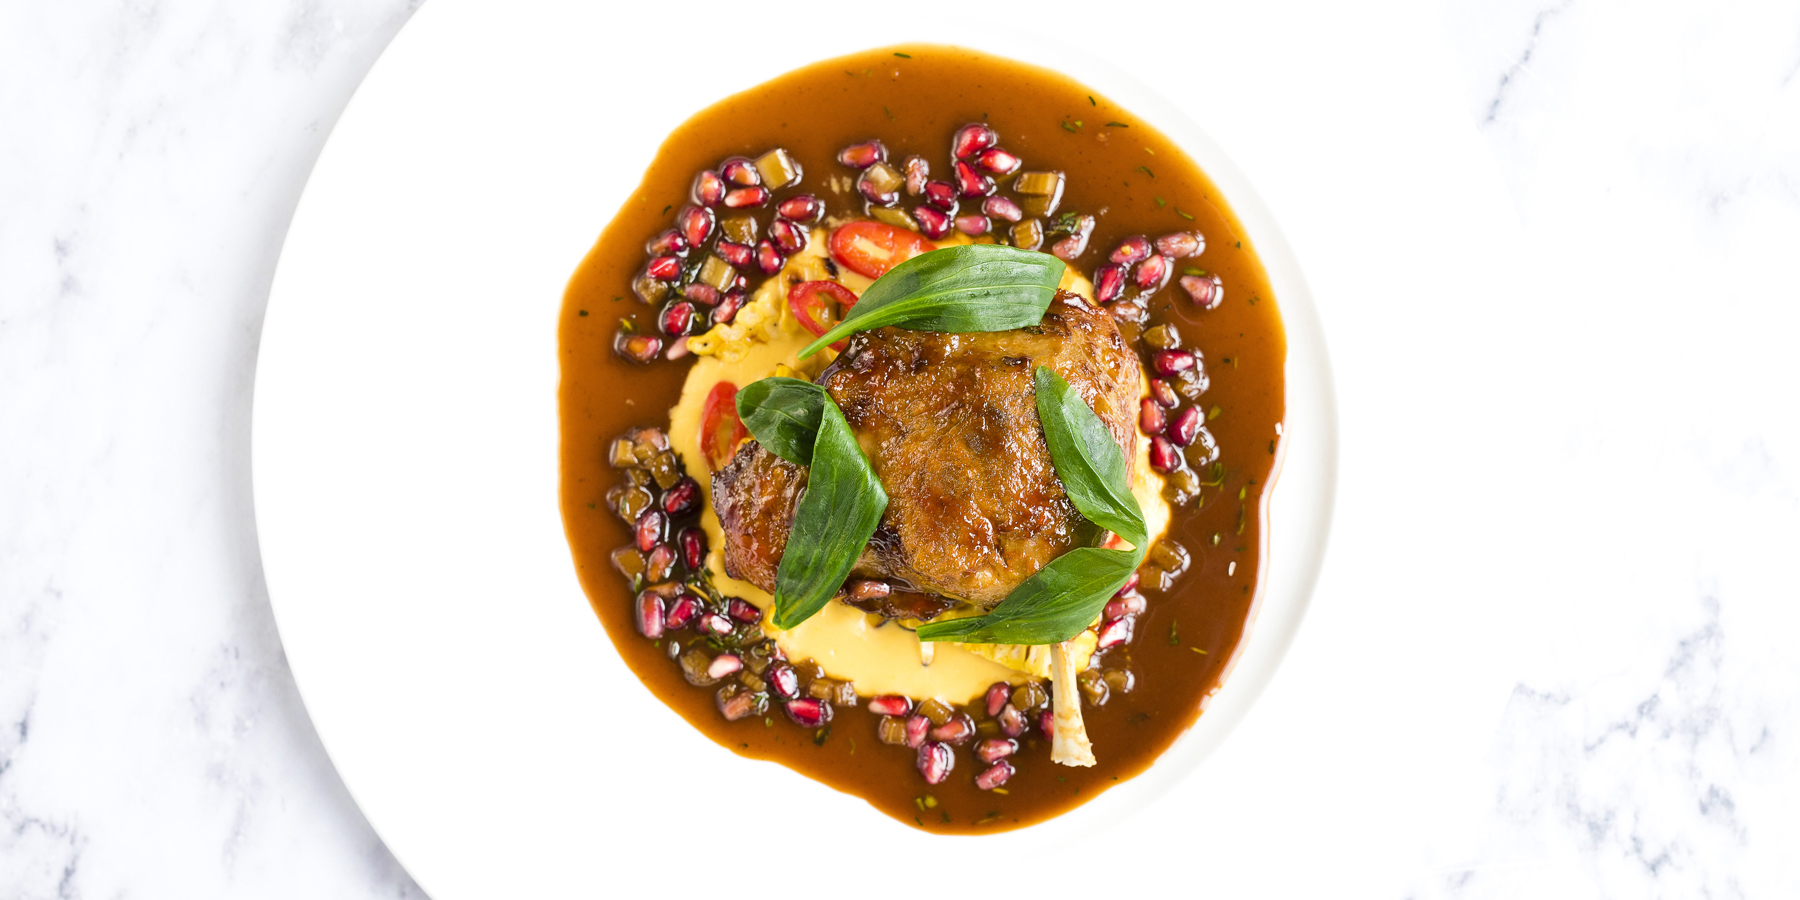 Duck leg with pickled rhubarb recipe